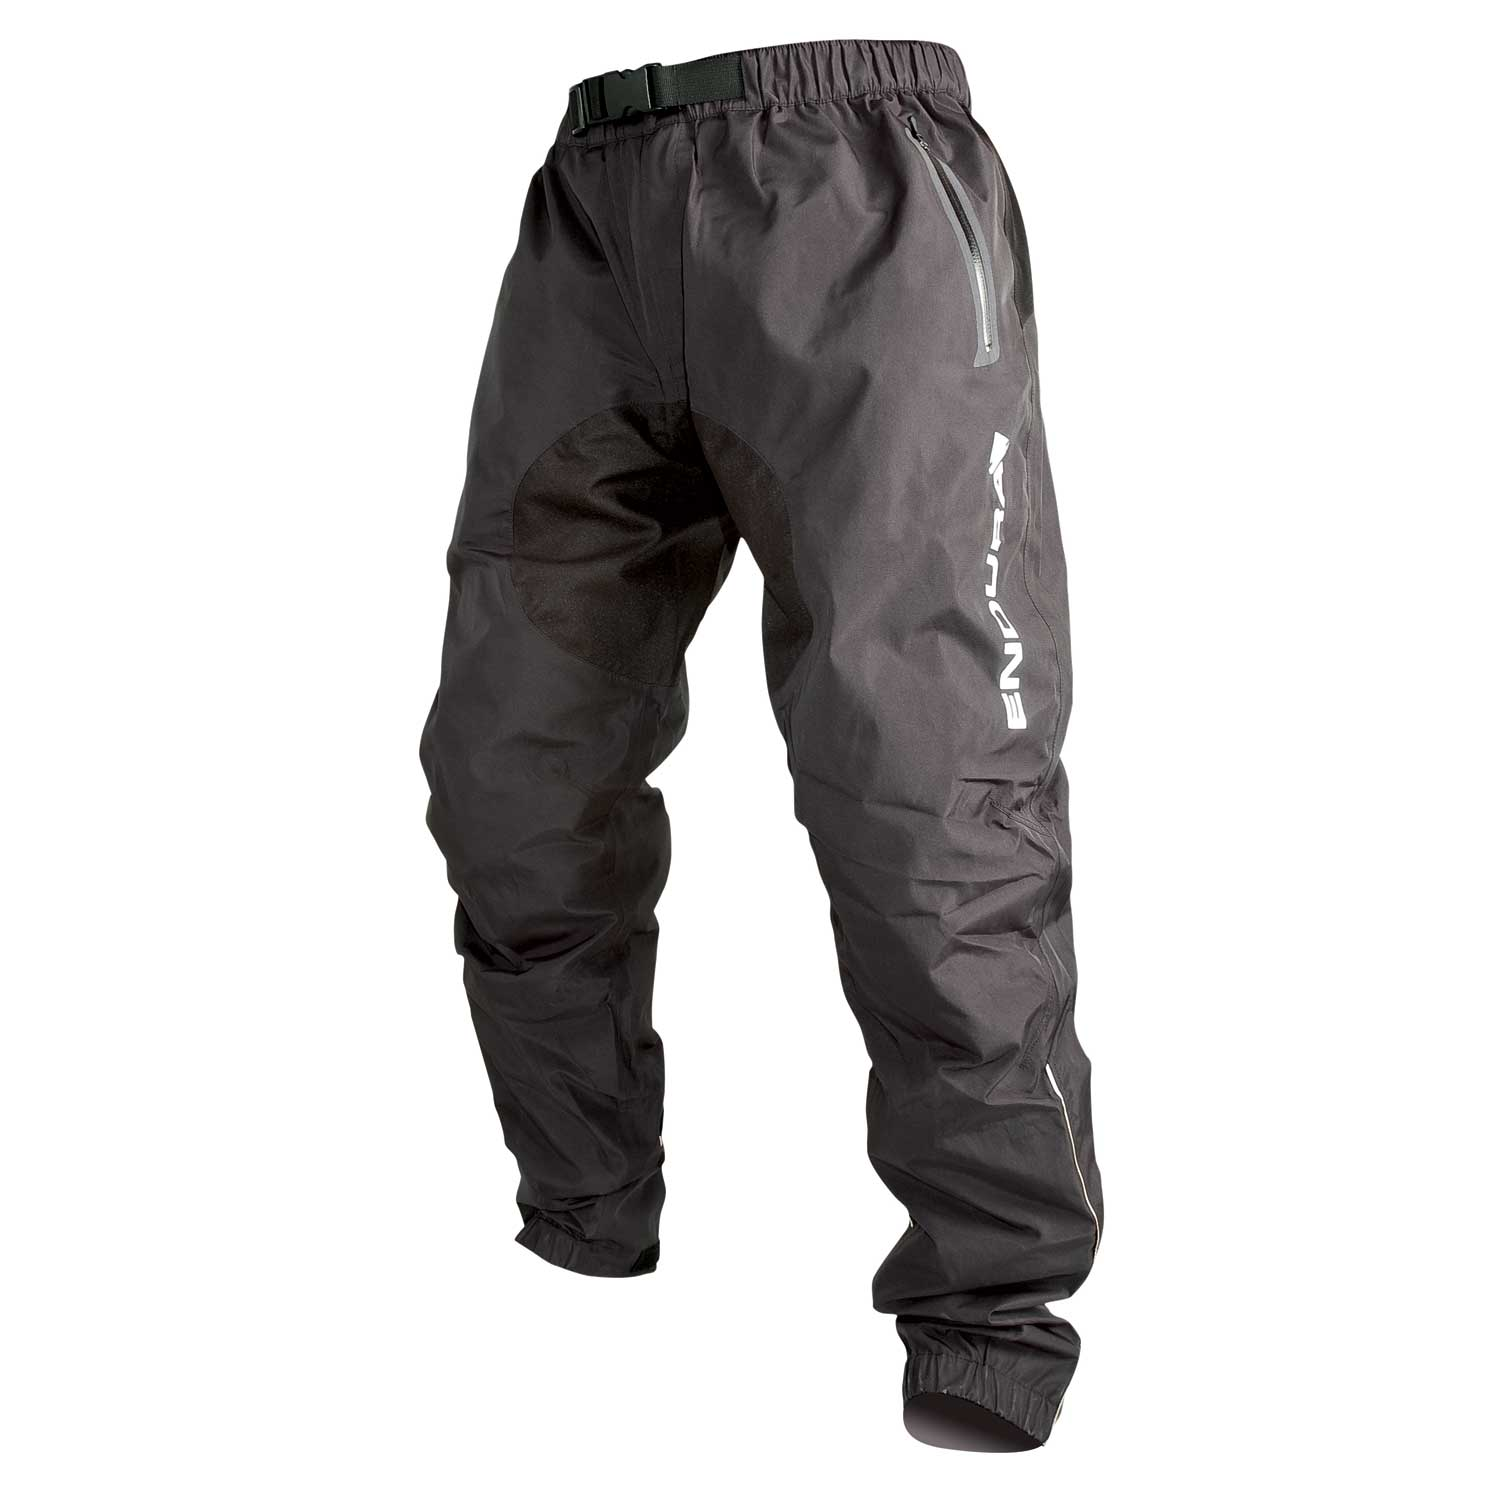 Velo PTFE Protection Overtrouser Black/None